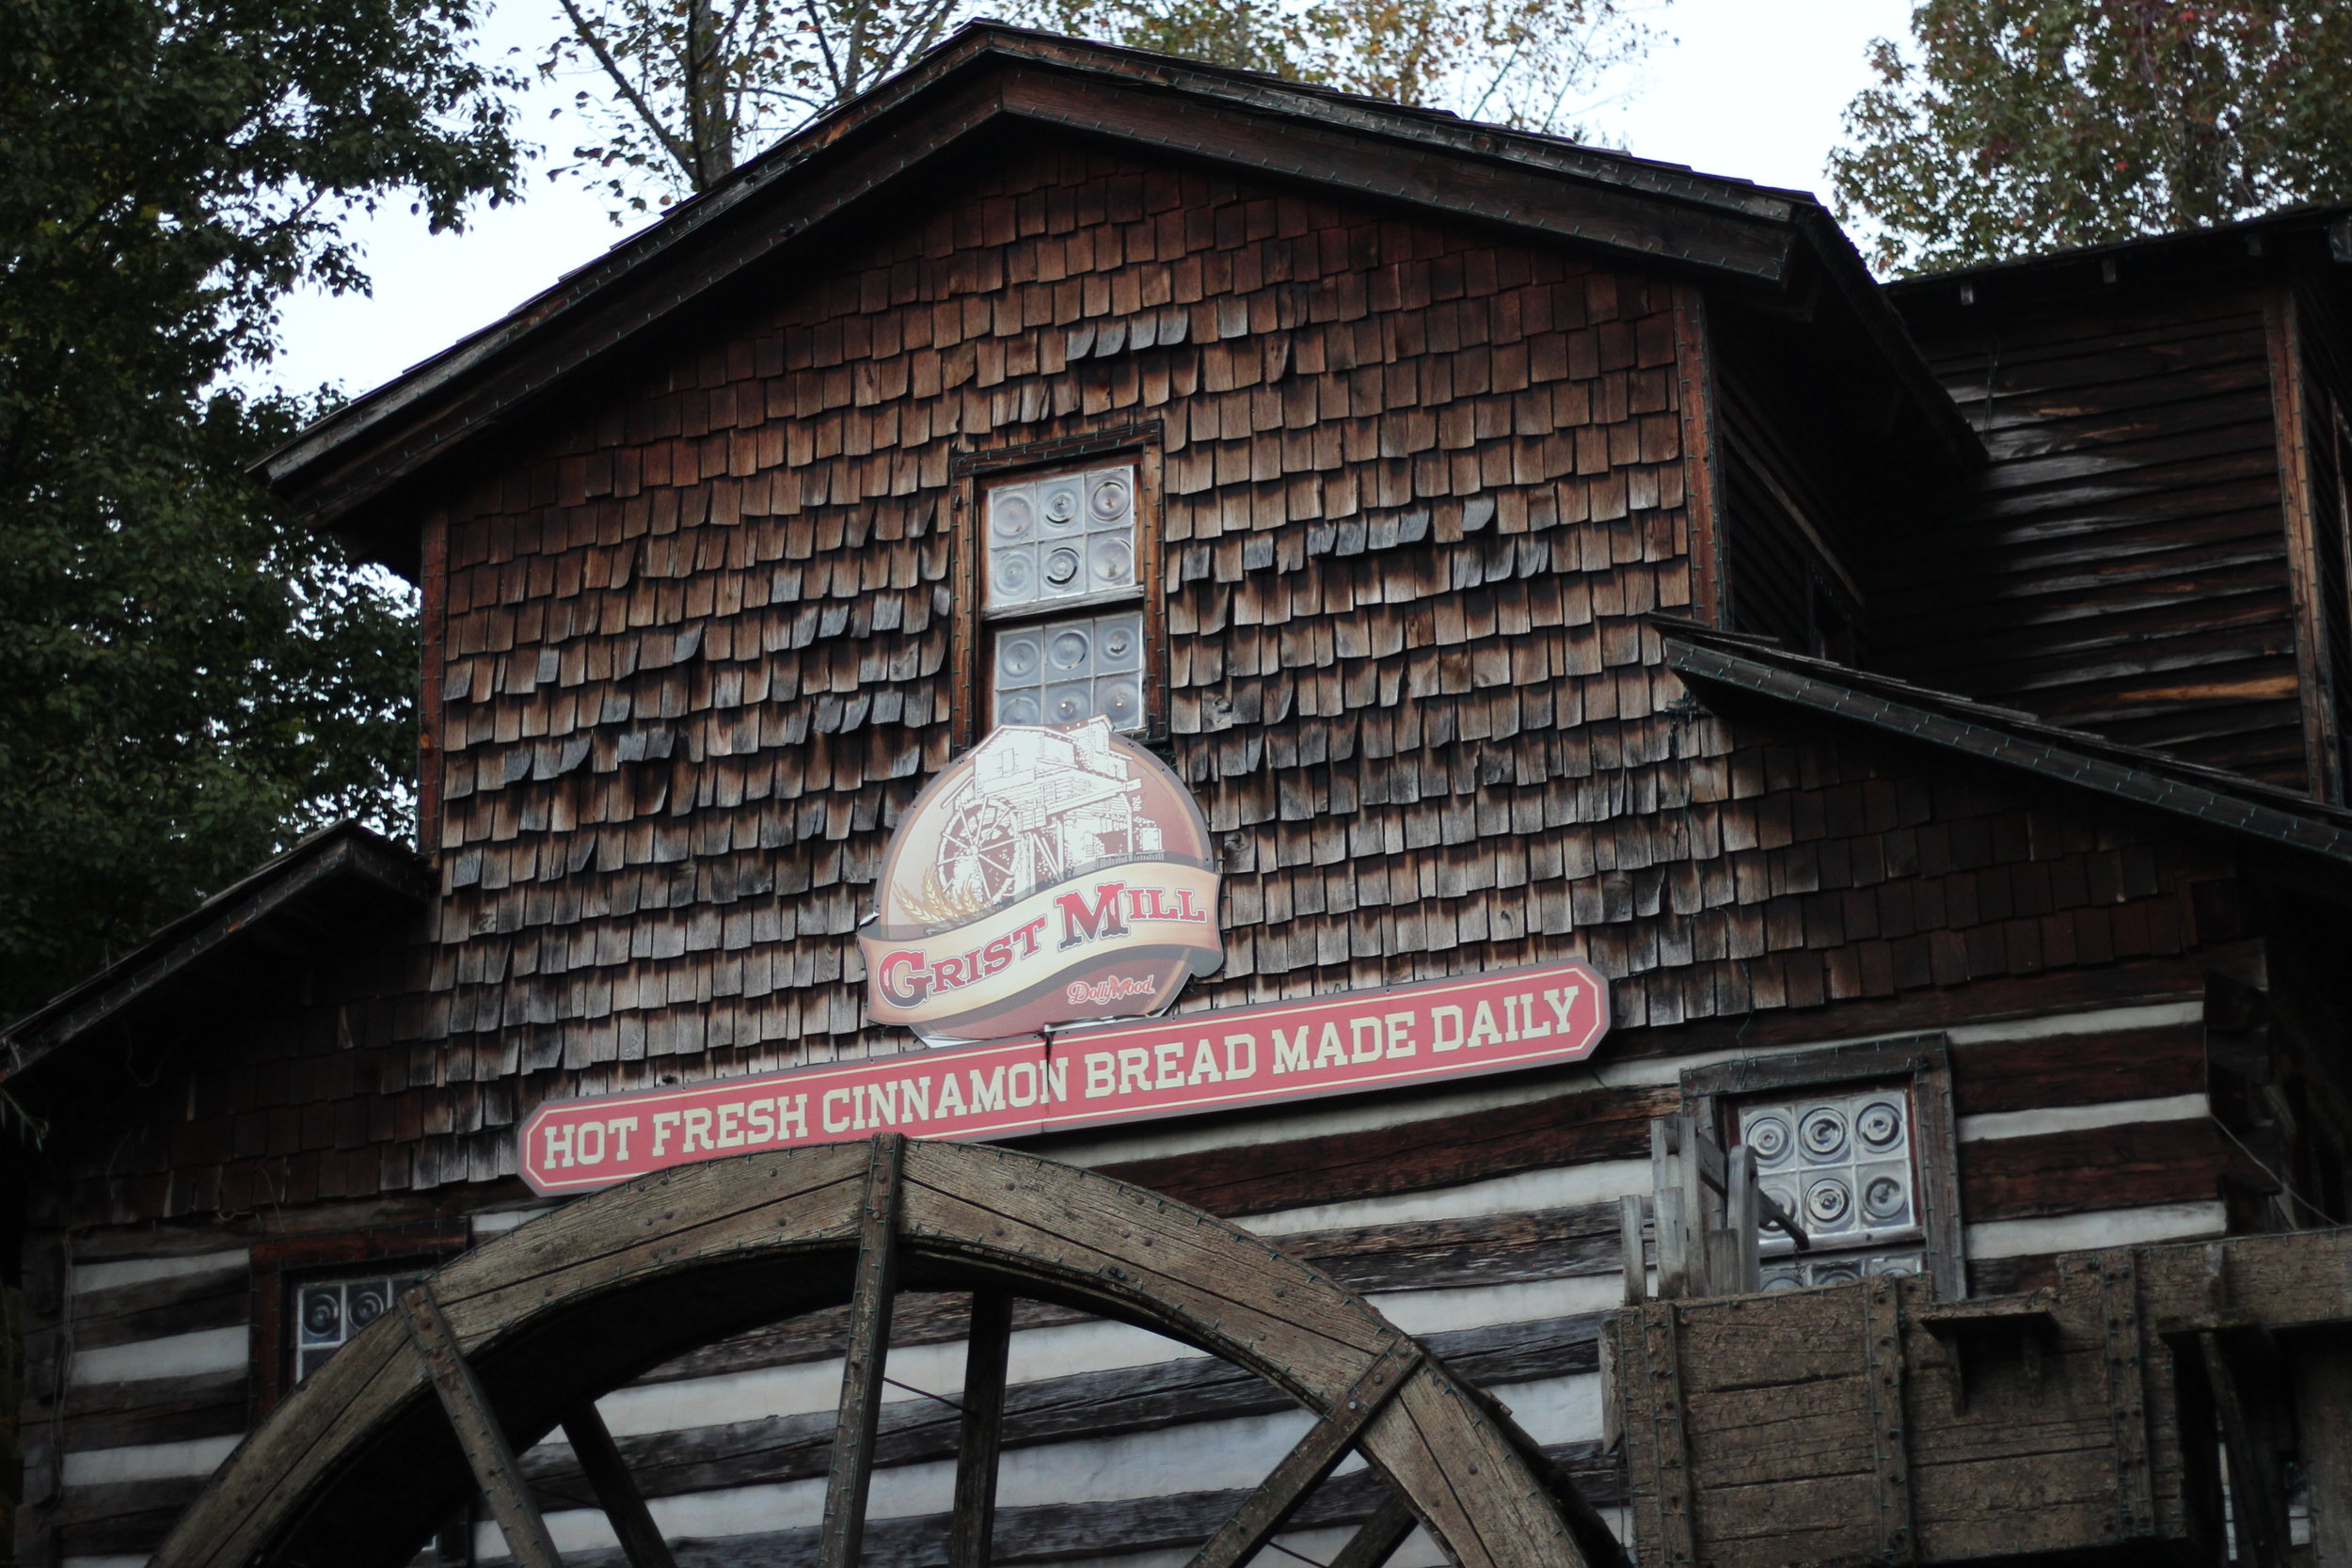 Dollywood Grist Mill, where you get the Cinnamon Bread